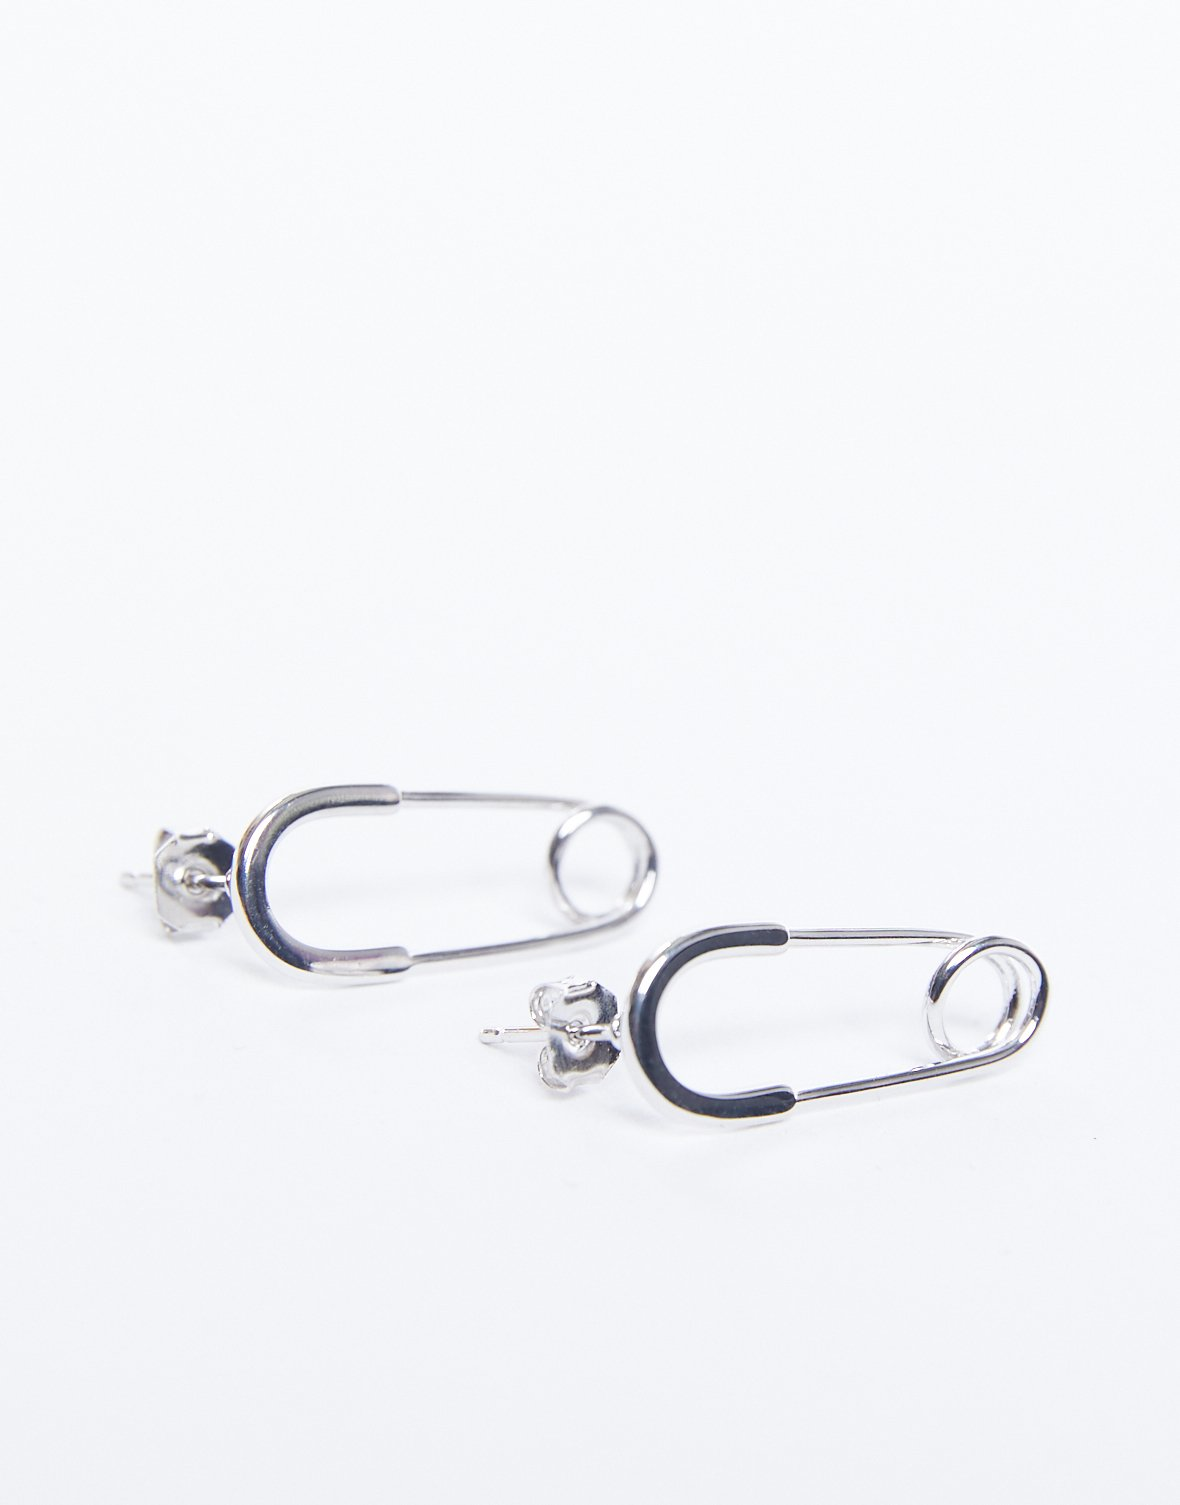 Pin Me Up! Safety Pin Earrings